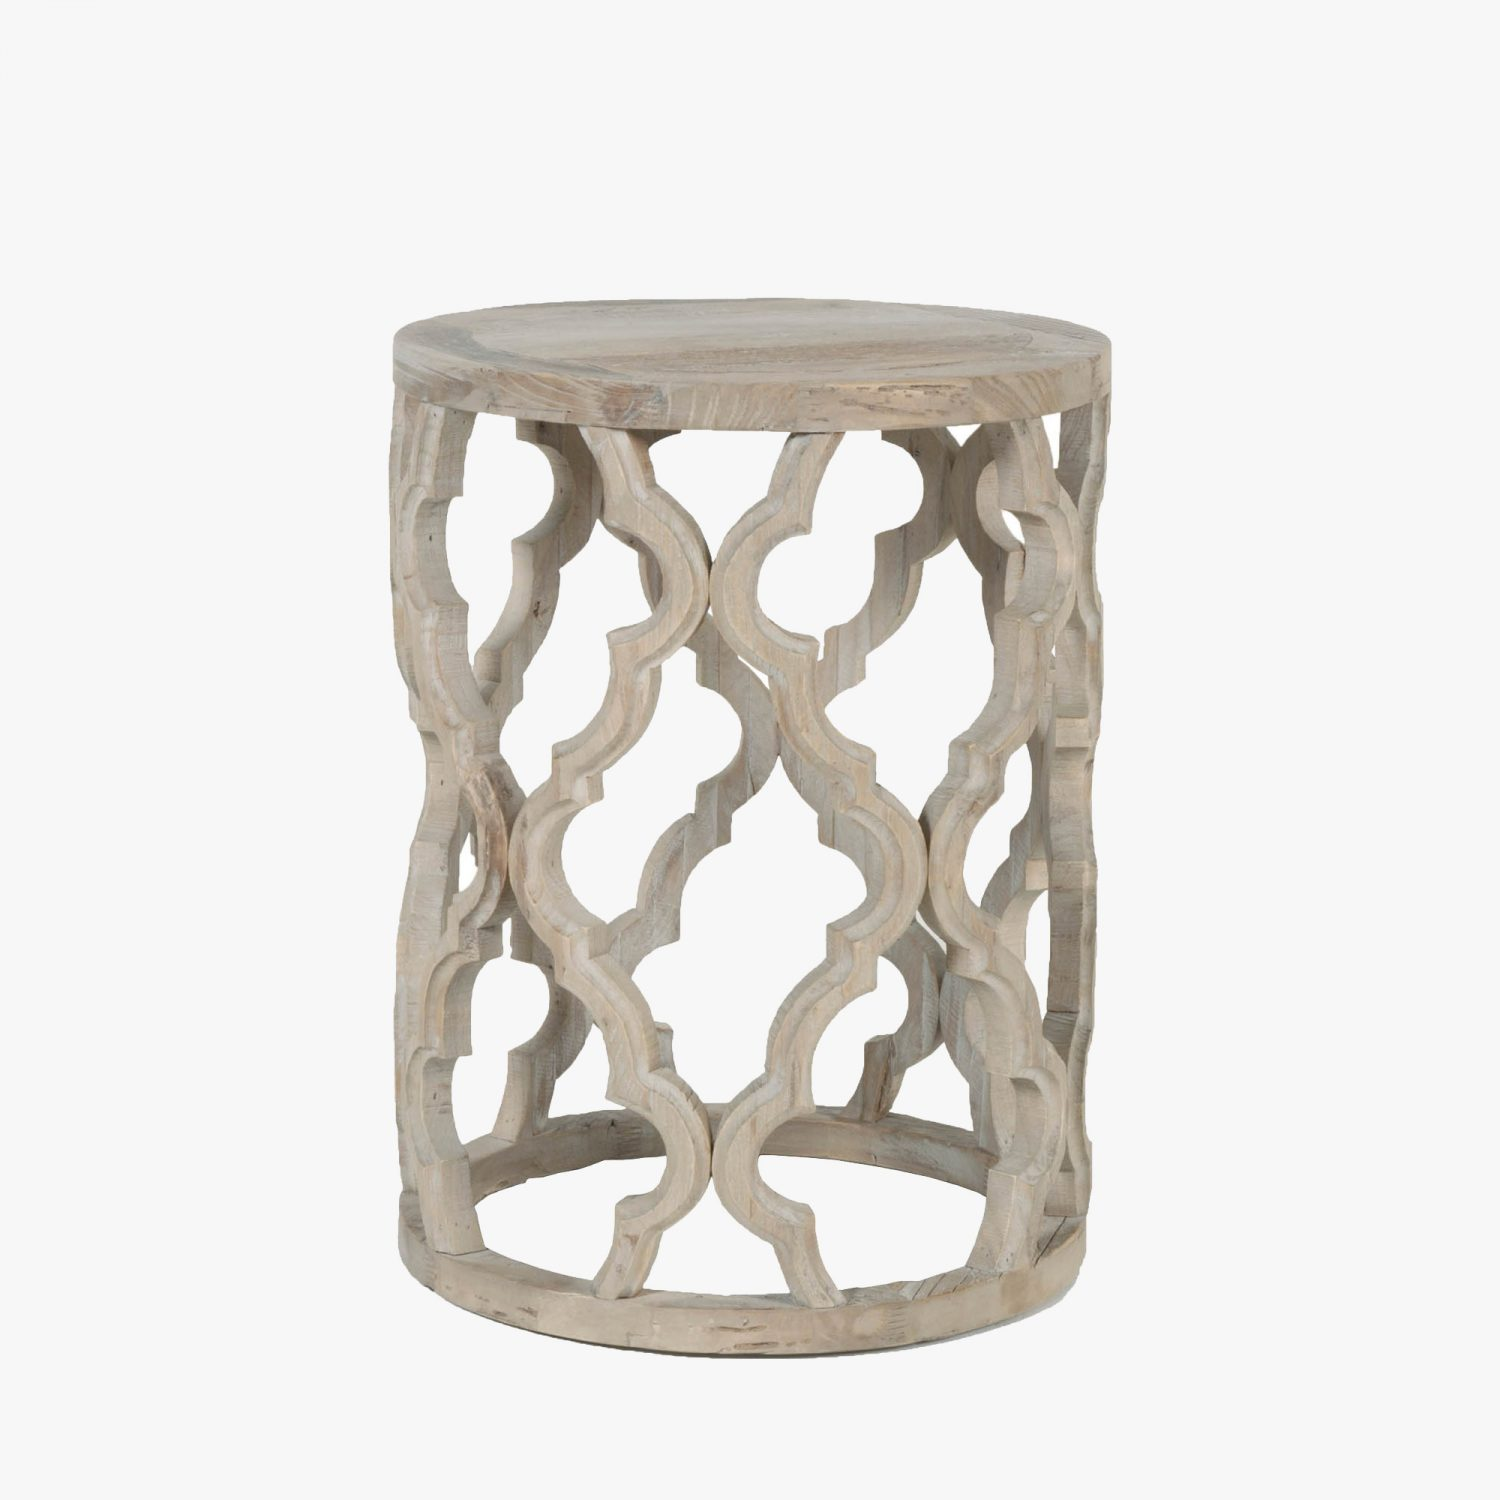 carved quatrefoil side table accent tables dear keaton wood coastal decor lamps white gloss console uttermost martel chairs blue outdoor full length mirror small tall end moroccan